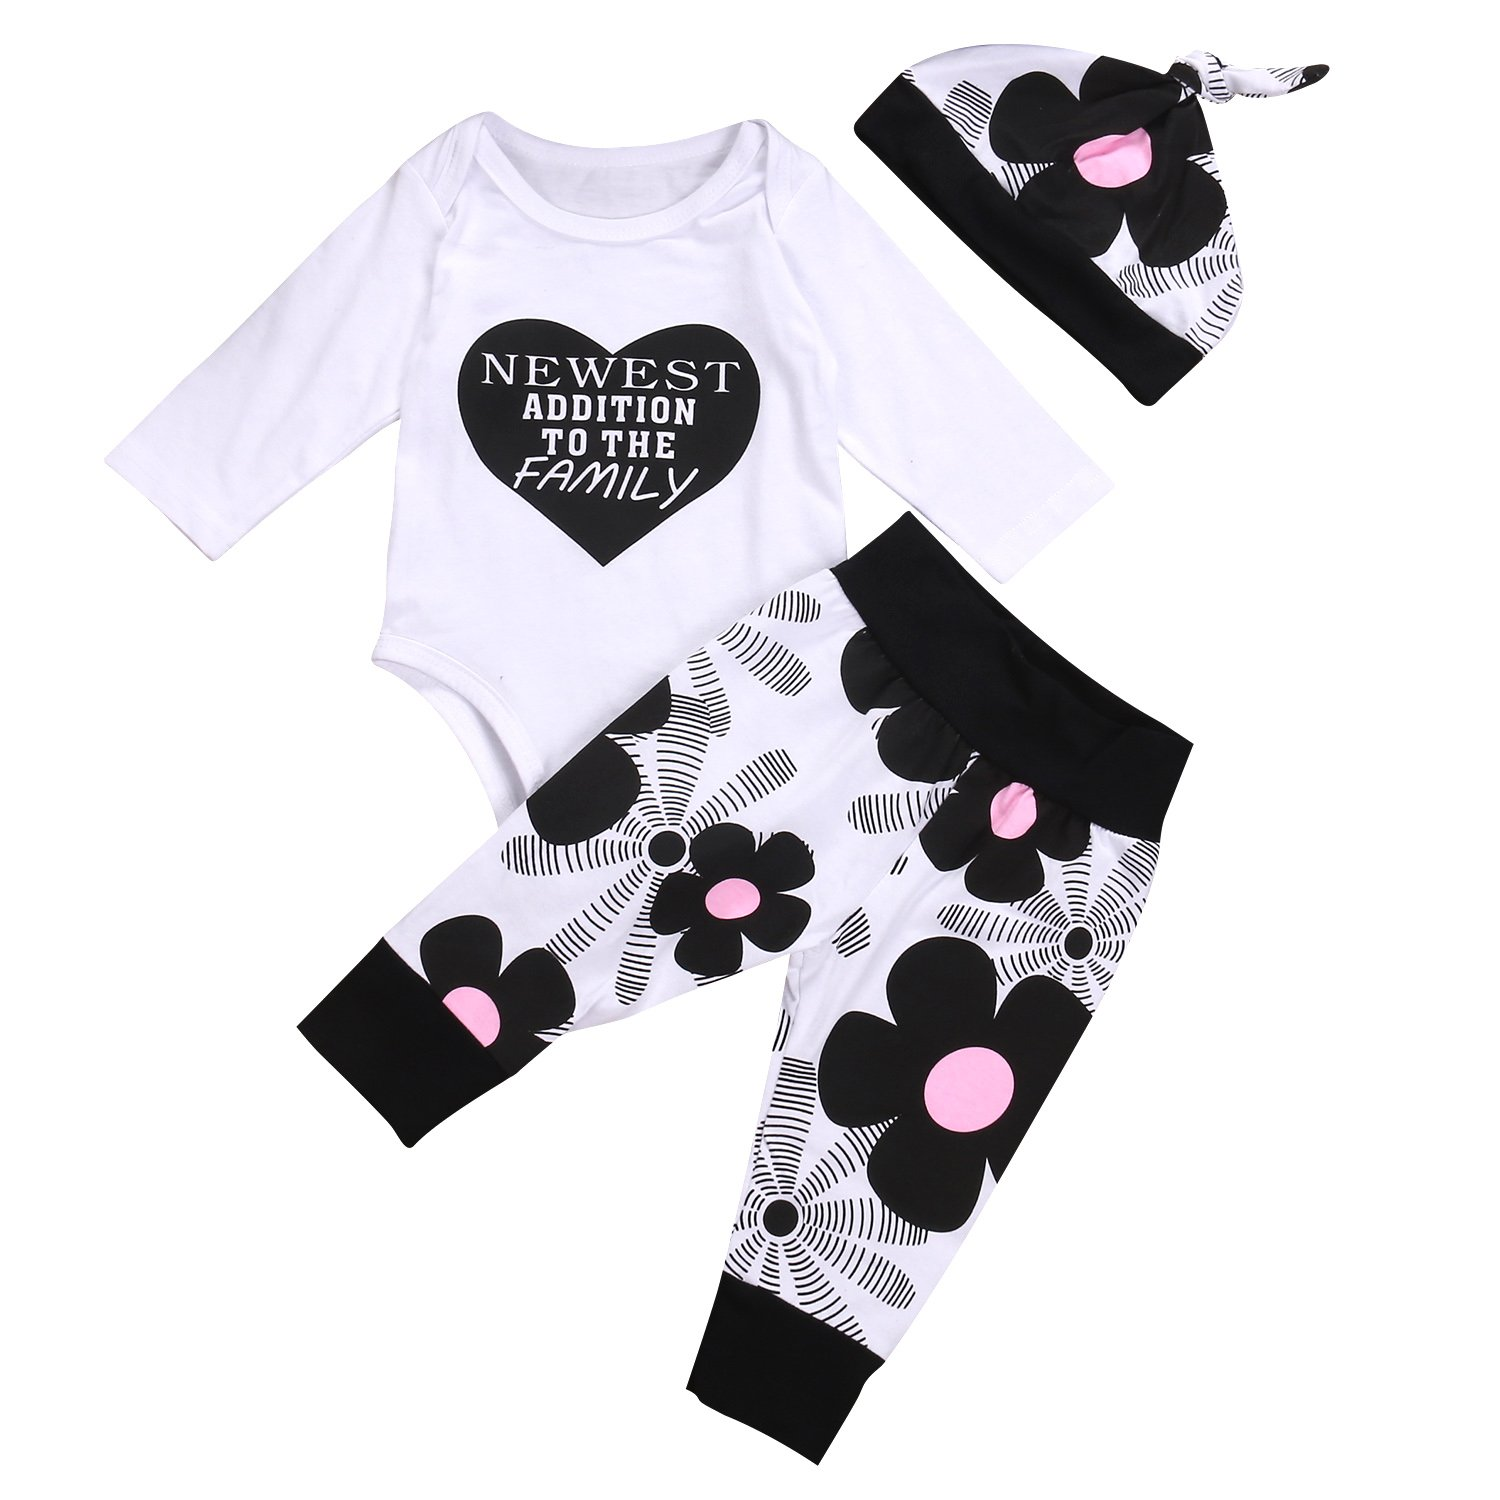 MA& BABY Newborn Kids Baby Boy Girl Cotton Tops Romper Pants Hat 3Pcs Outfits Set Clothes Moore